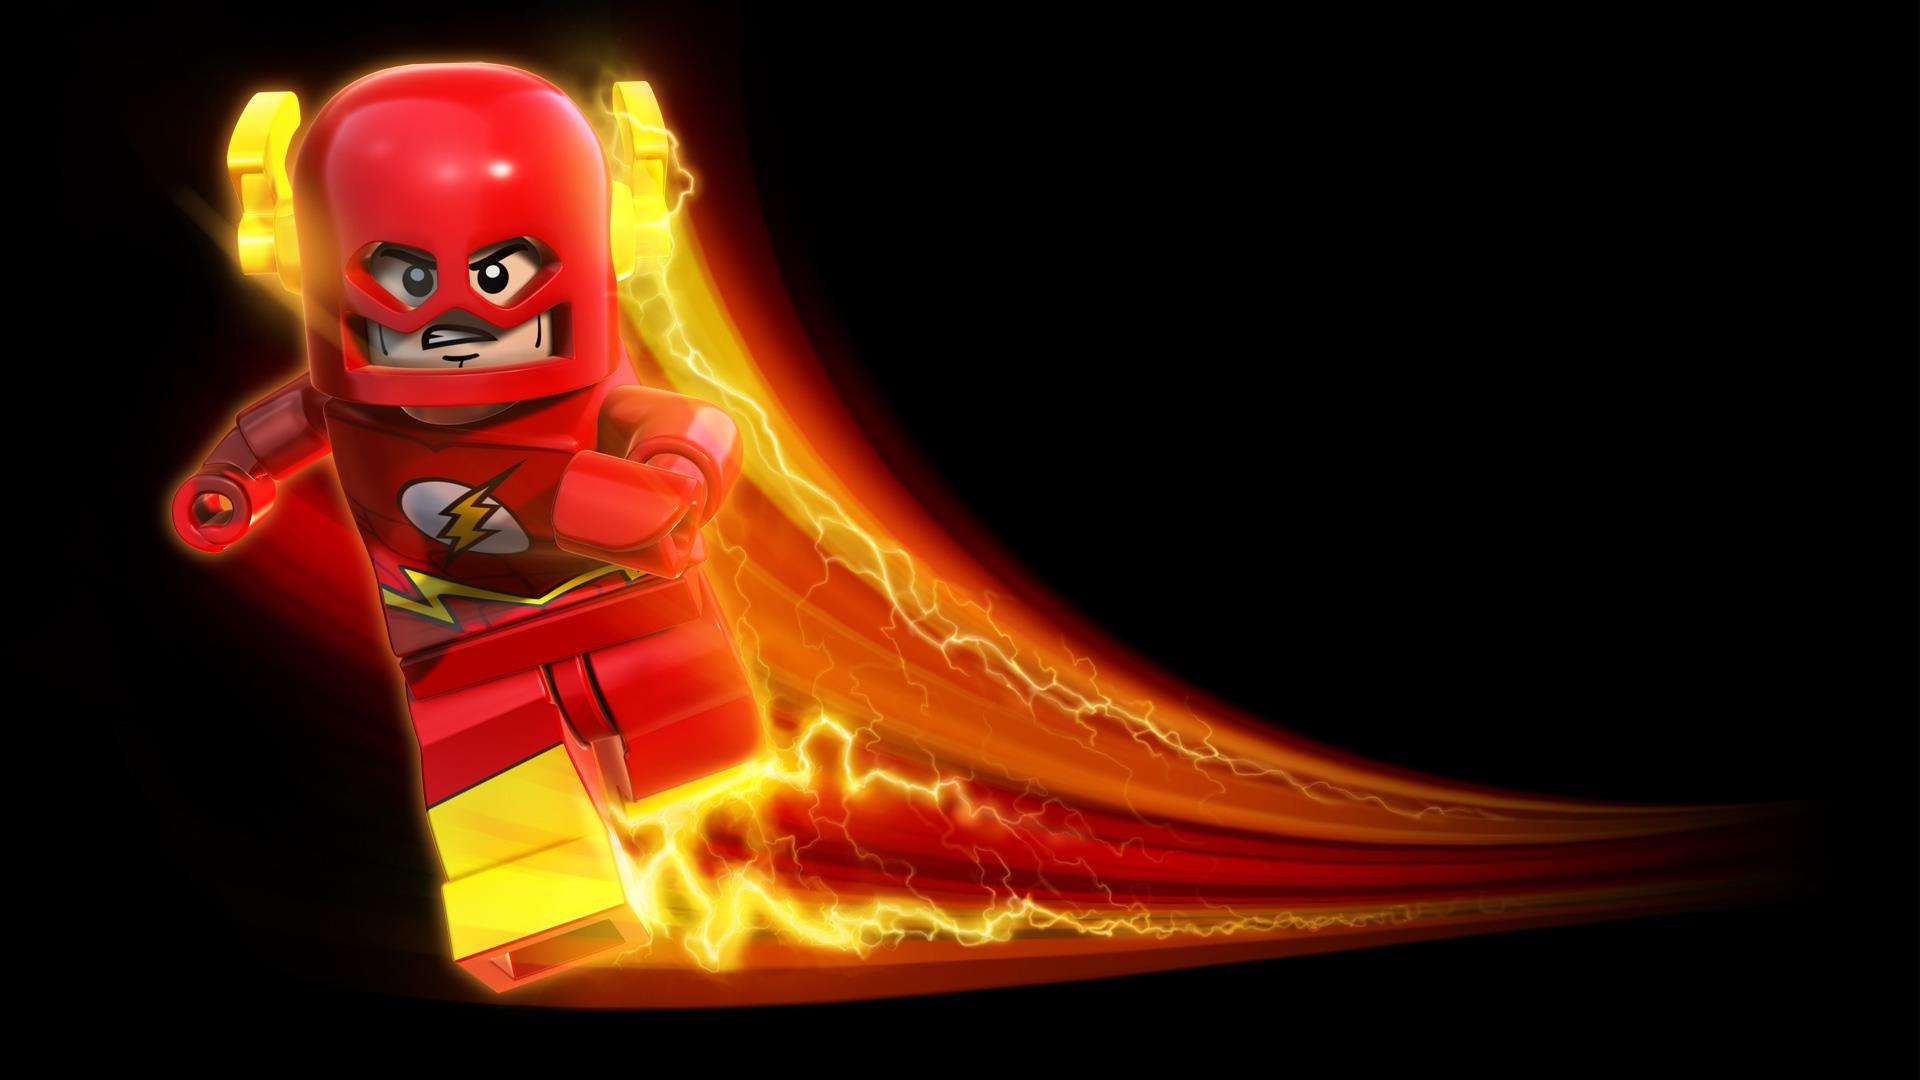 share this LEGO Flash my current favorite wallpaper wallpapers 1920x1080